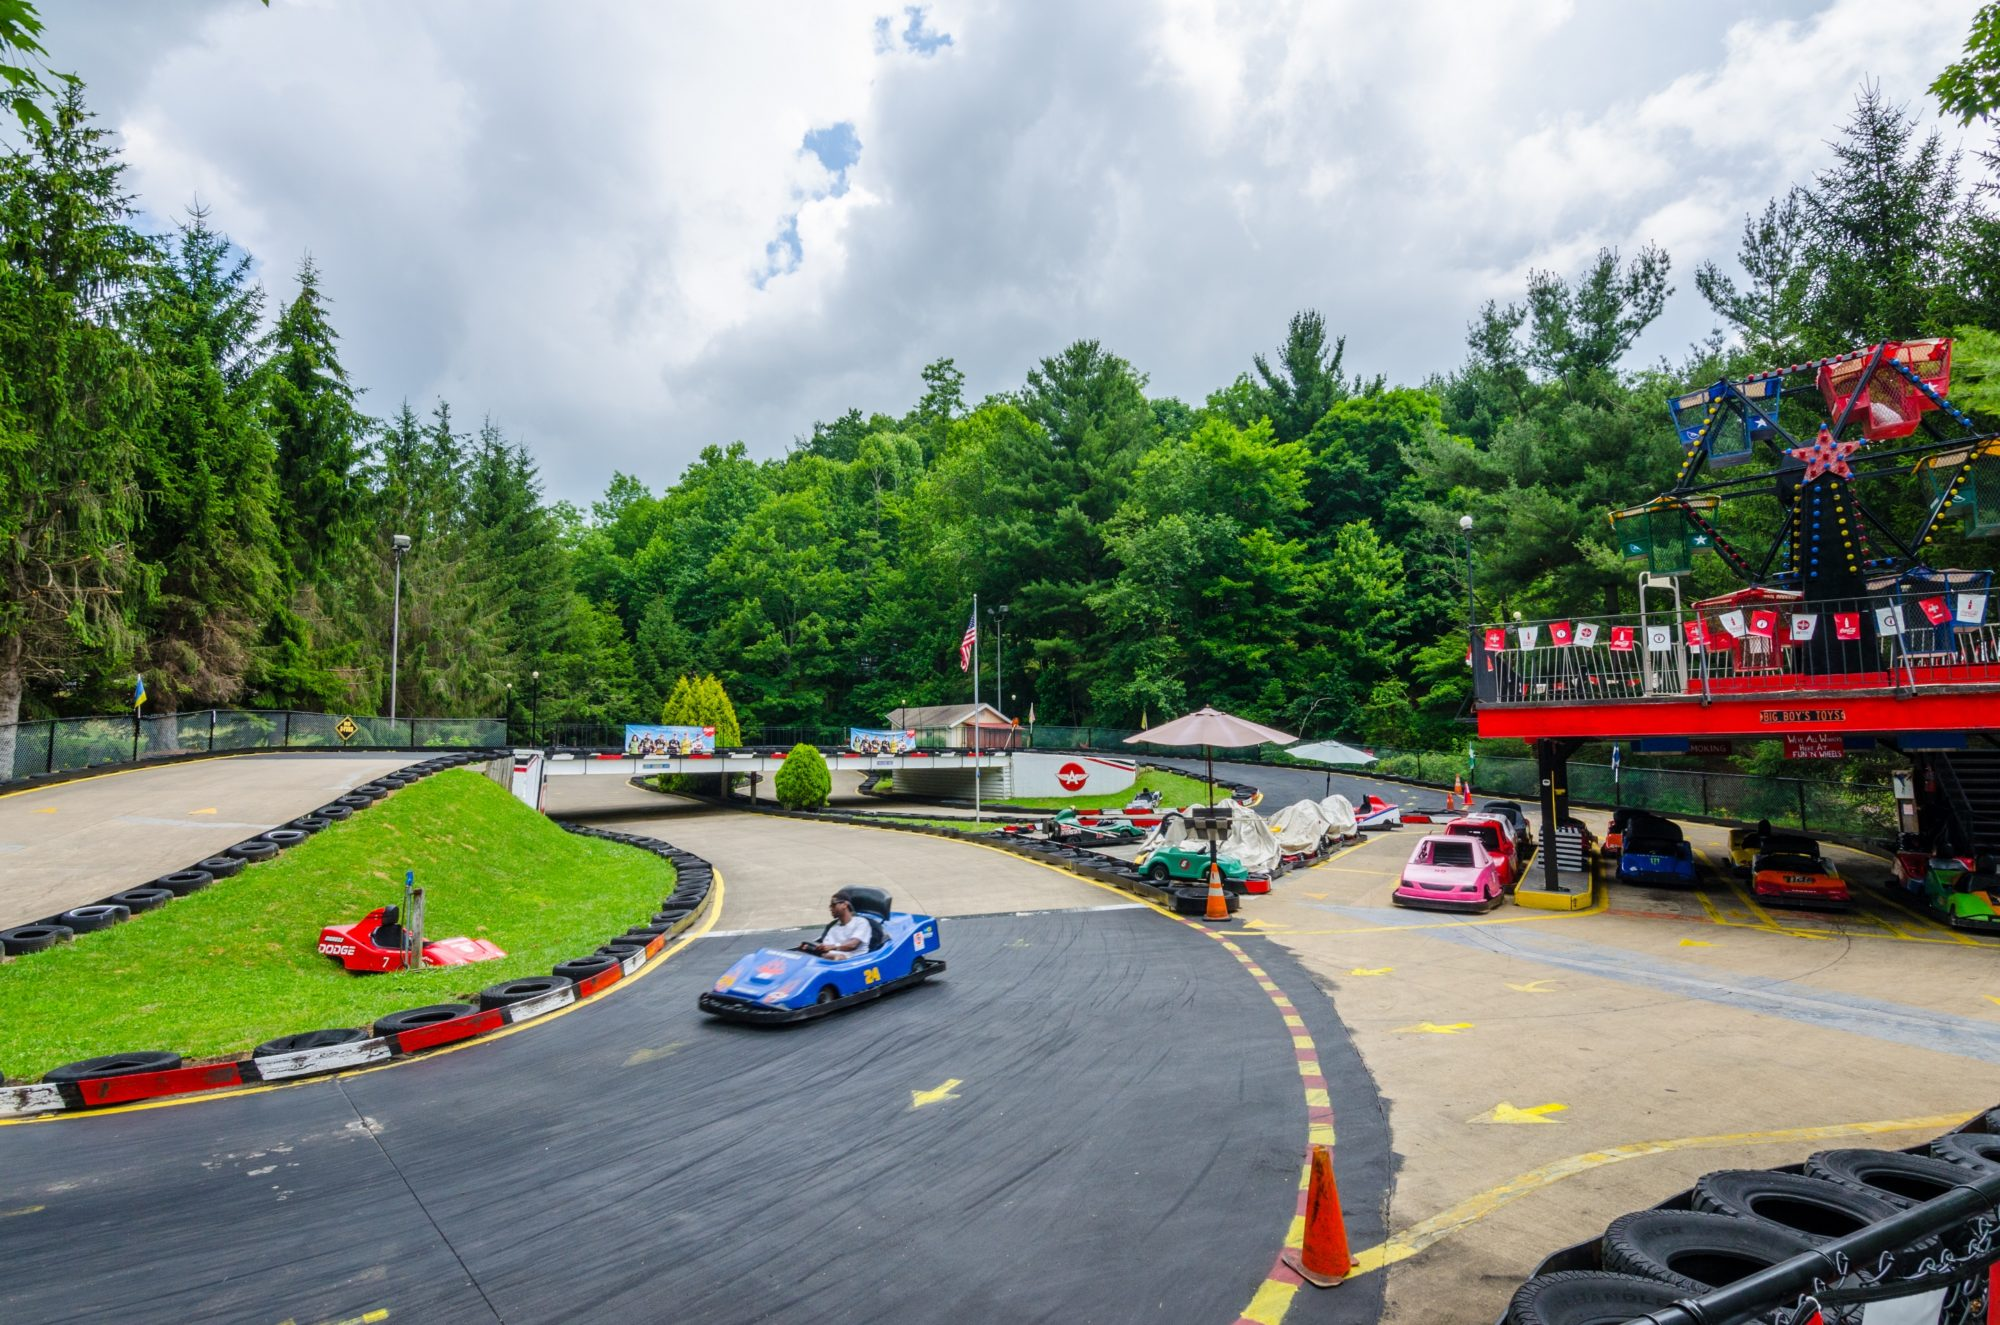 Go kart track surrounded by tall trees with go karts and small ferris wheel on raised area overlooking track